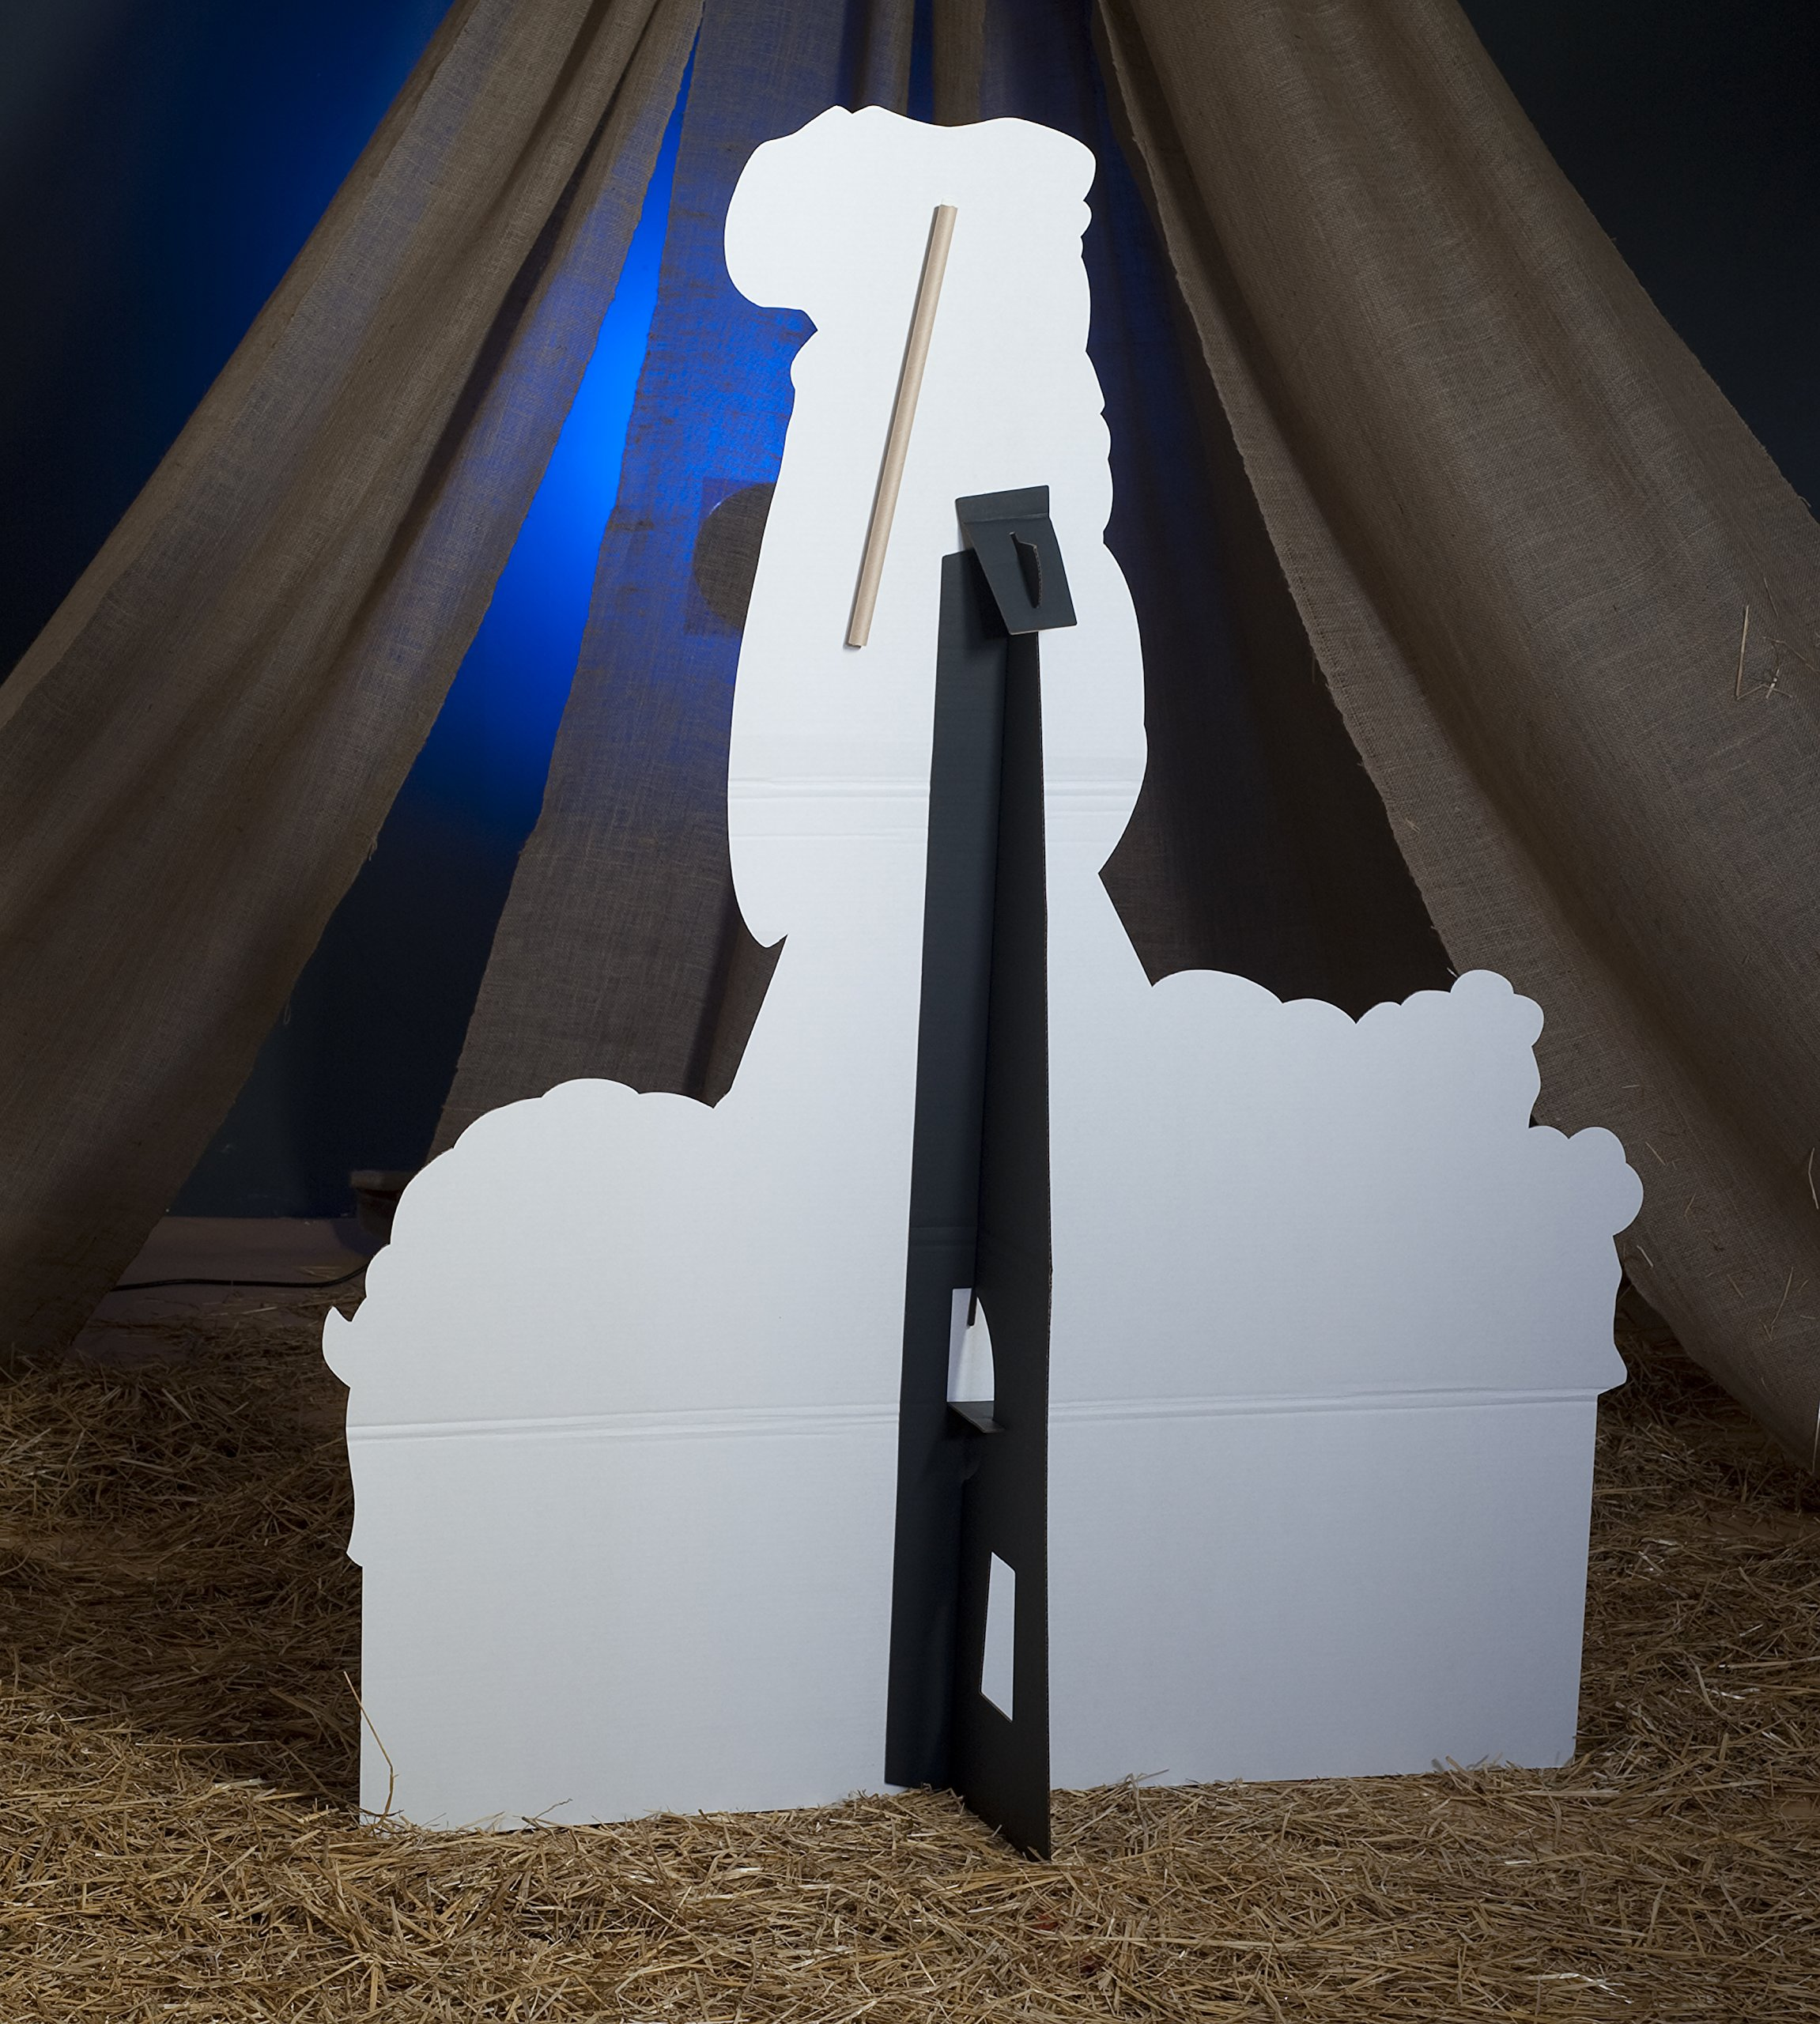 Shepherd and Sheep Standee Standup Photo Booth Prop Background Backdrop Party Decoration Decor Scene Setter Cardboard Cutout